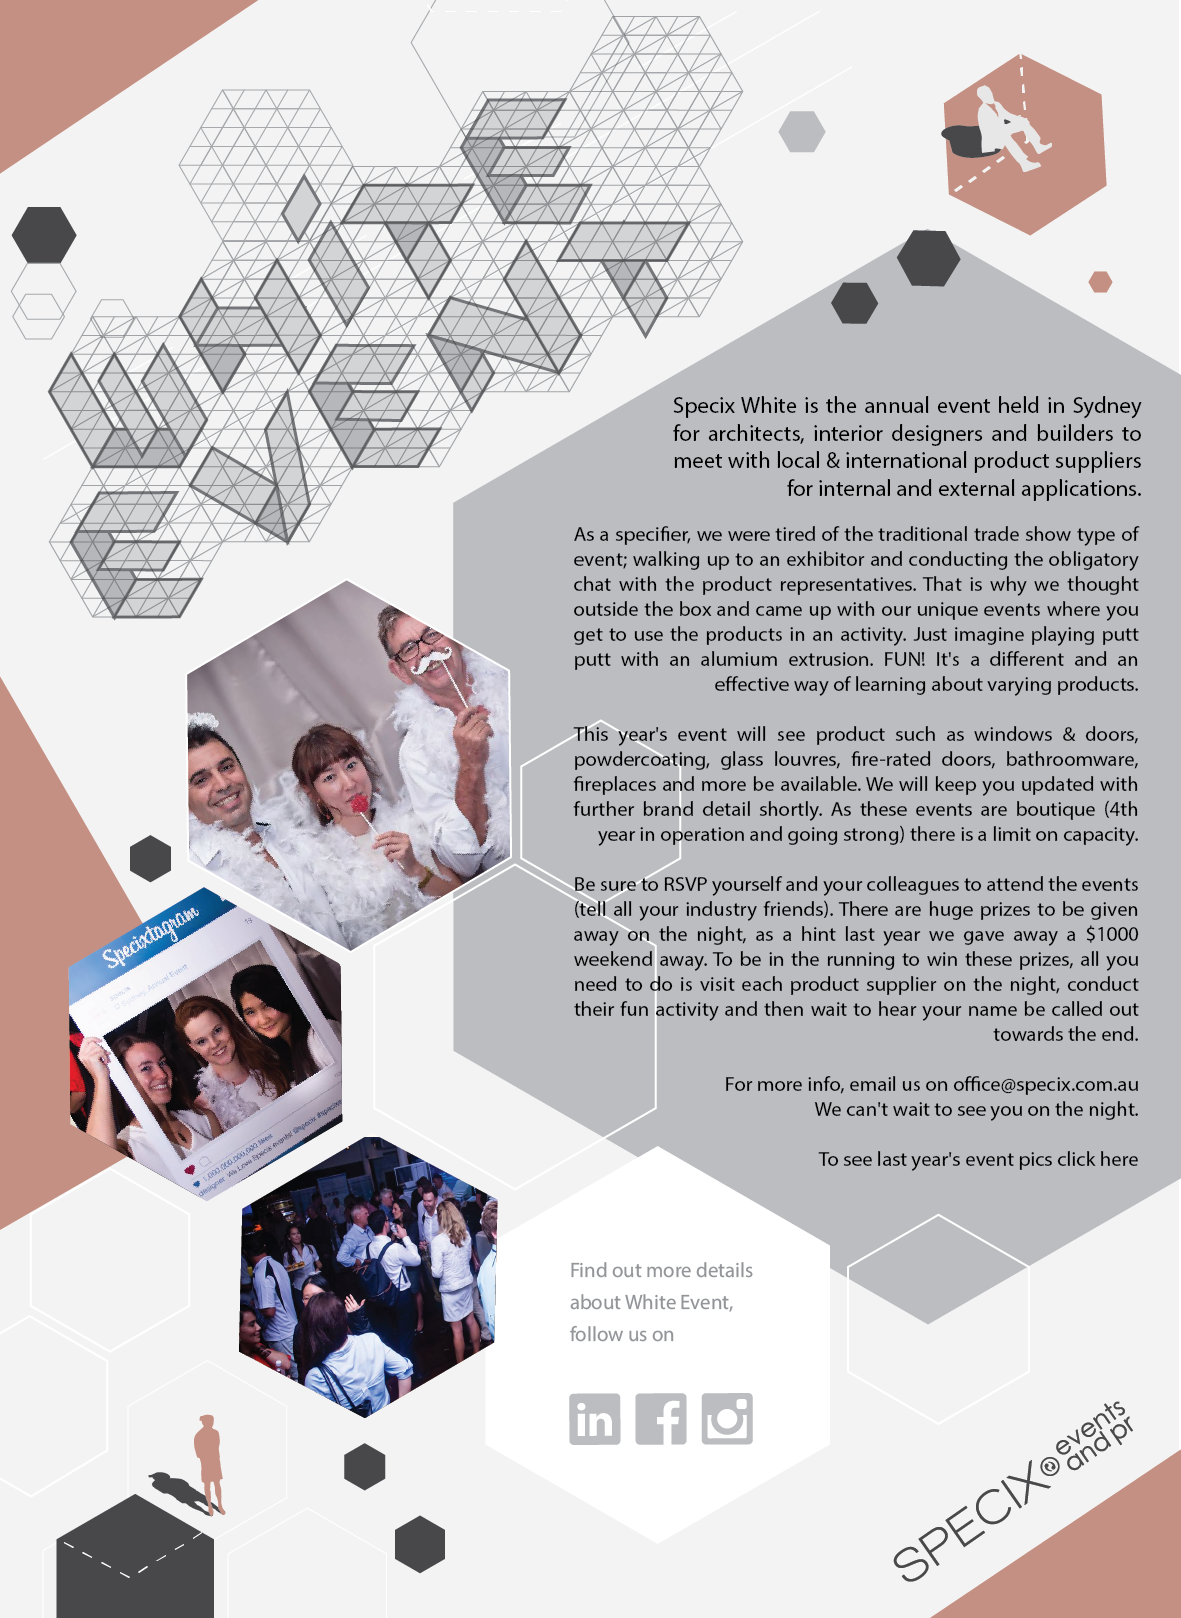 Specix White Event Is The Annual Architecture And Design Held Melbourne Sydney